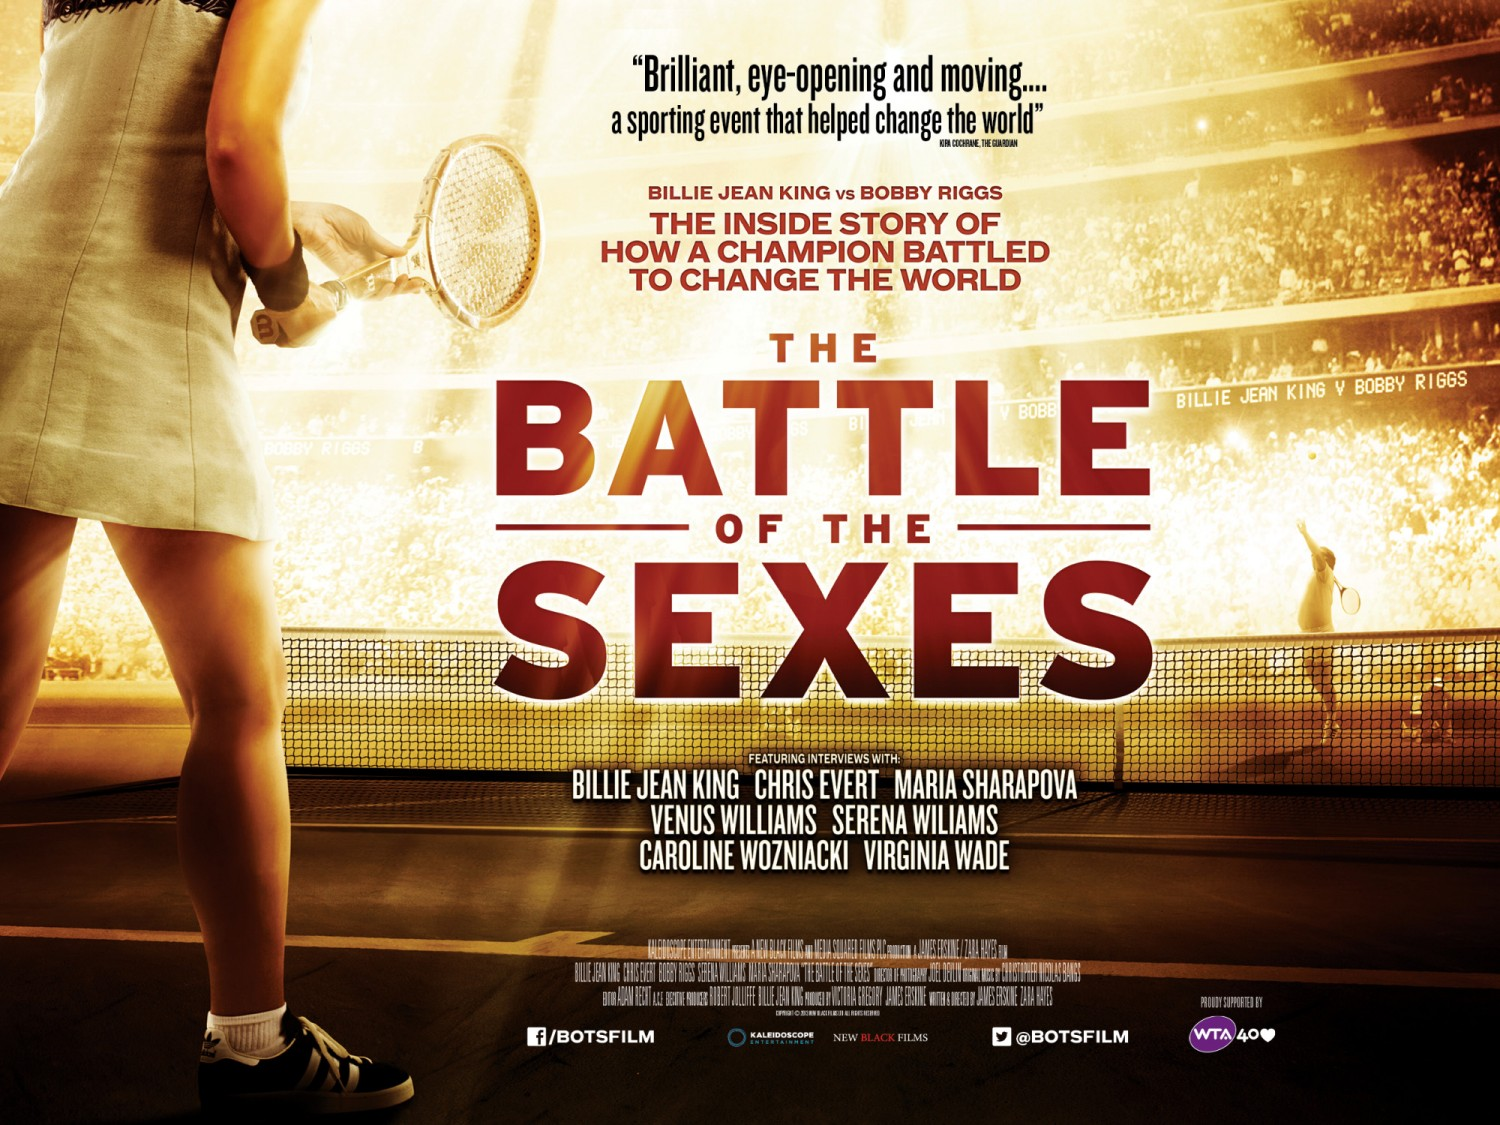 battle of the sexes No sport reflects the spirit of one-on-one competition like tennis, and there are  two movies battling for supremacy inside battle of the sexes,.